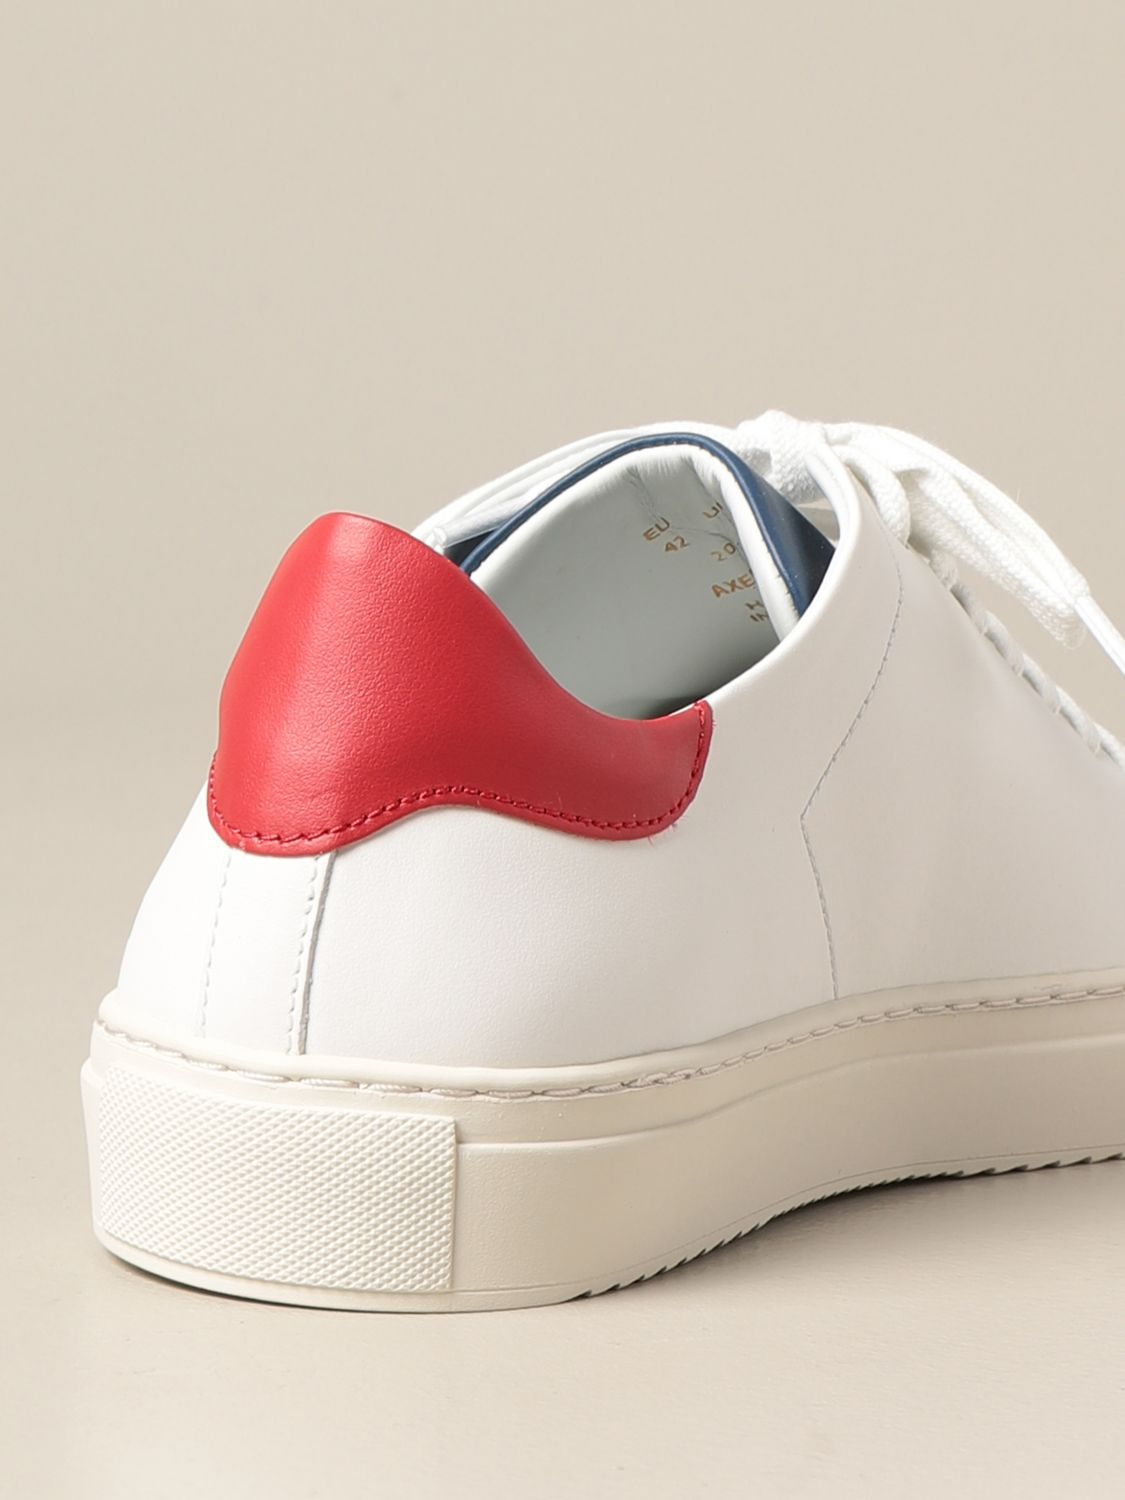 Trainers Axel Arigato: Shoes men Axel Arigato red 3